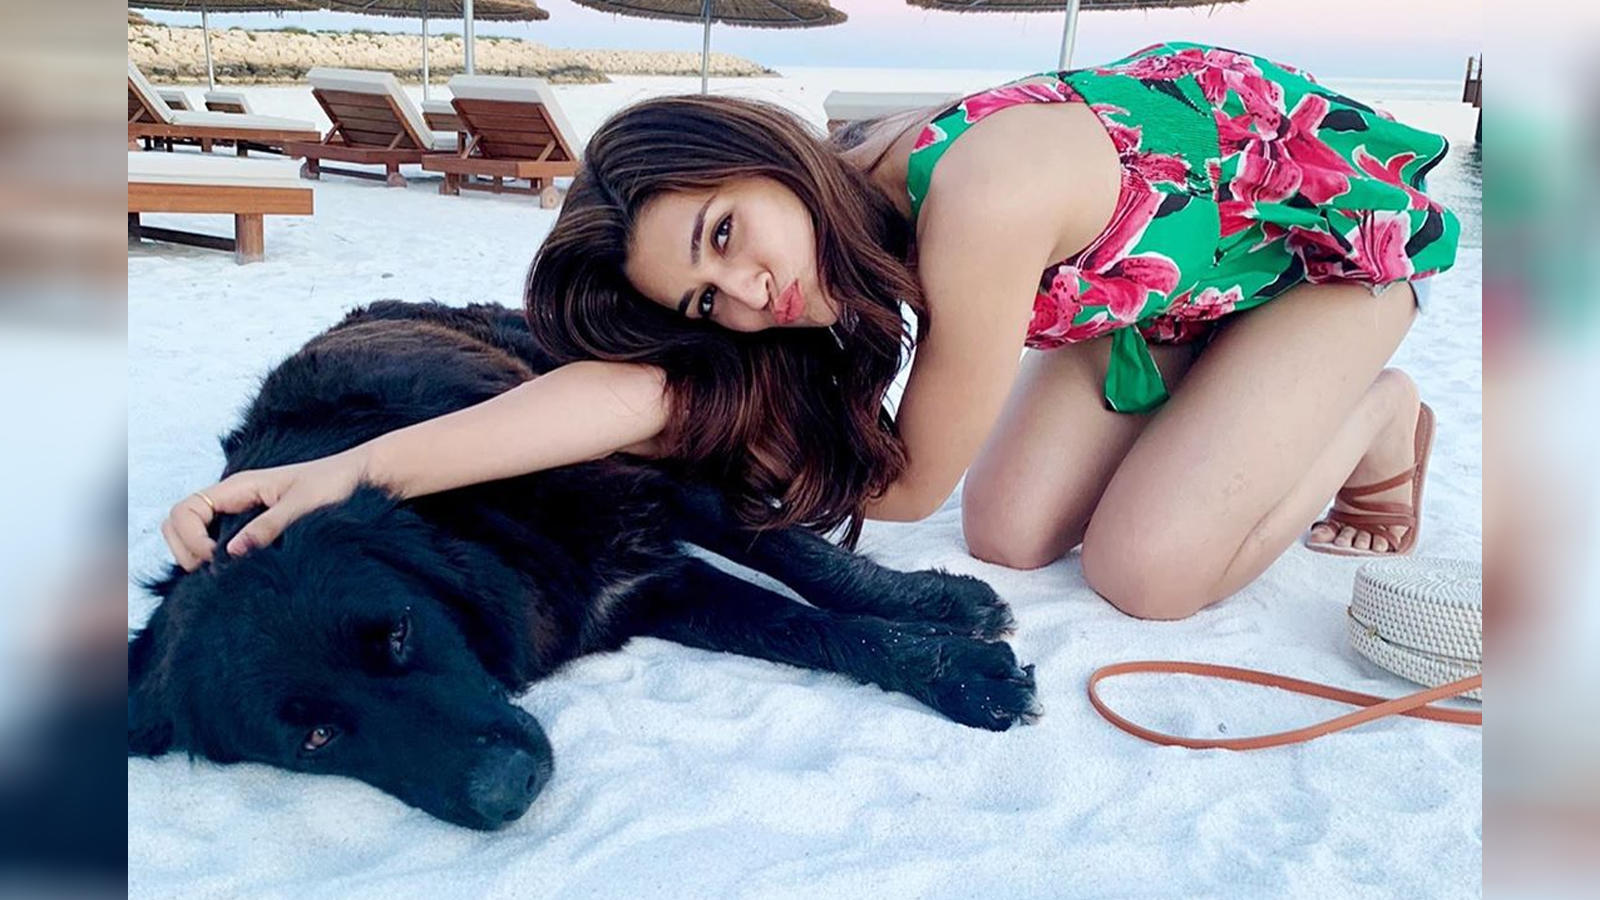 Kriti Sanon holidays in Turkey with a new friend!